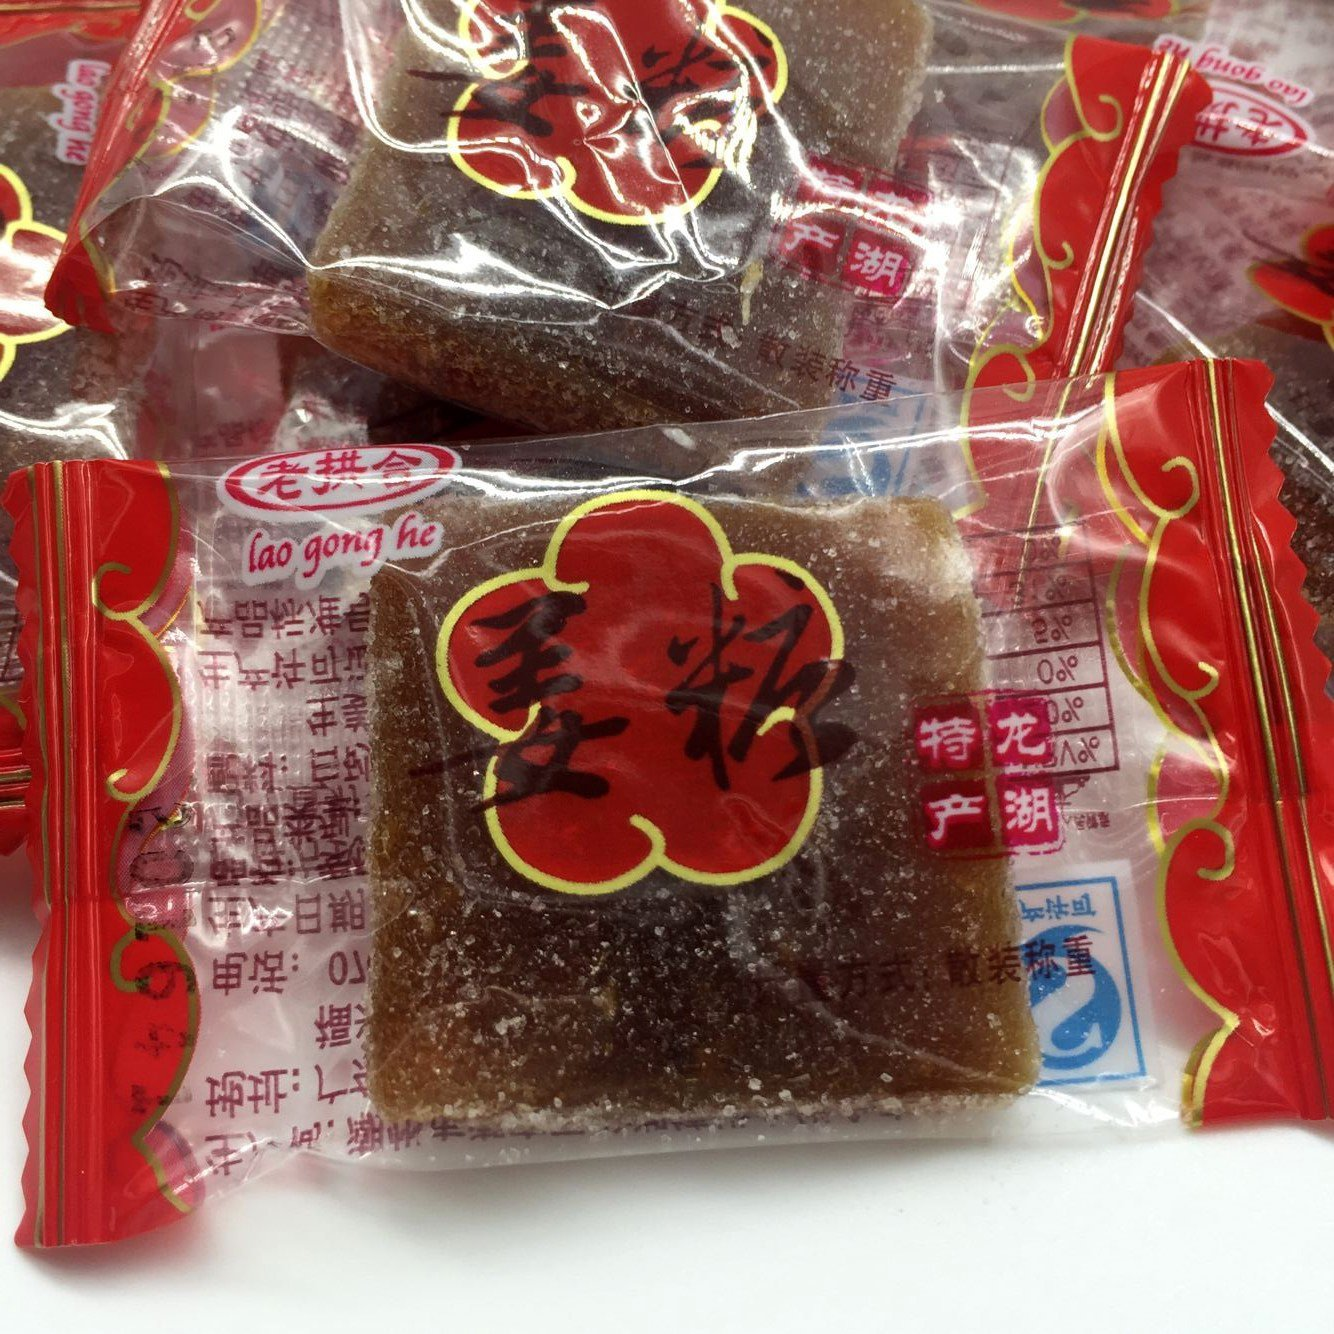 Guangdong Hakkas Specialty Chewy Ginger Candy 500g (1.1lb)